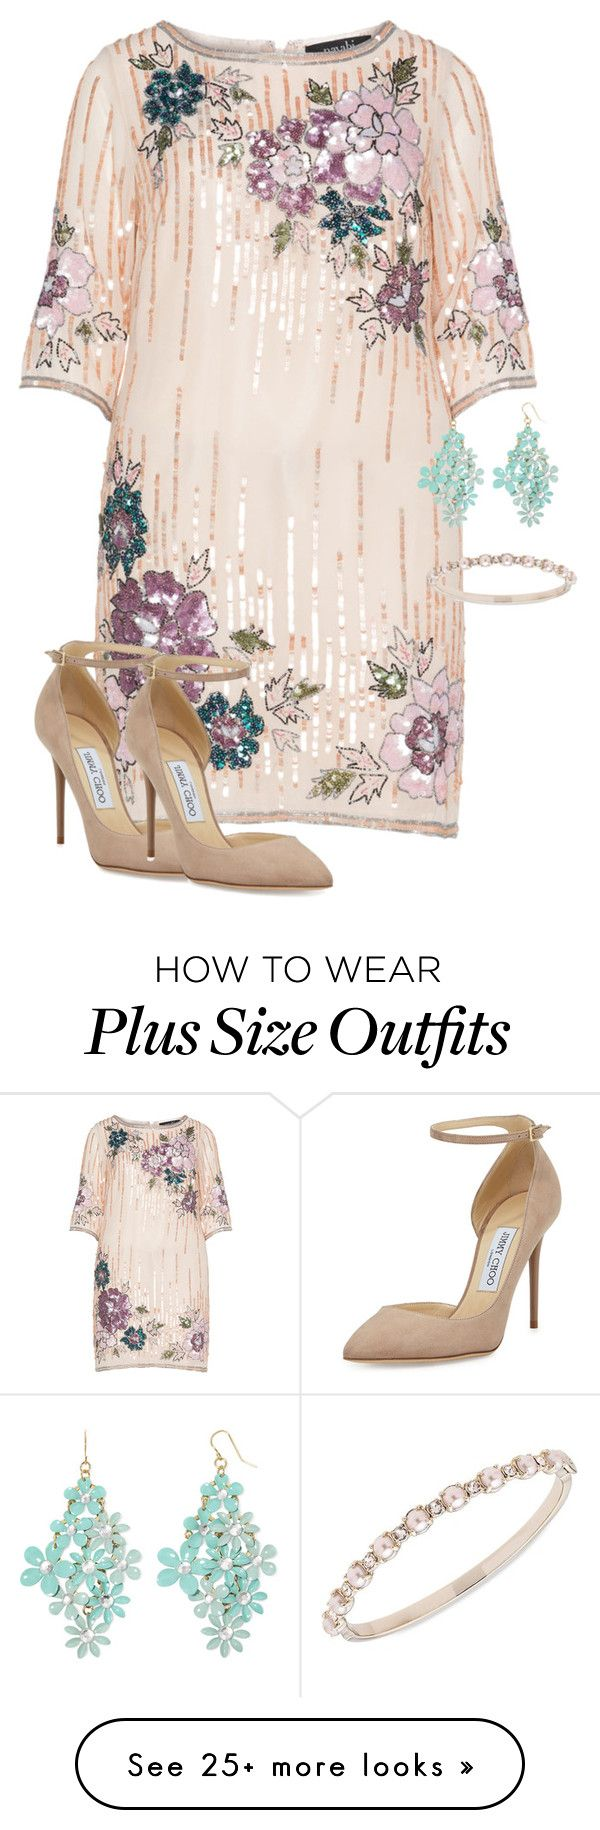 """Untitled #415"" by ealiceaoconnor on Polyvore featuring navabi, Decree, Jimmy Choo and Marchesa"